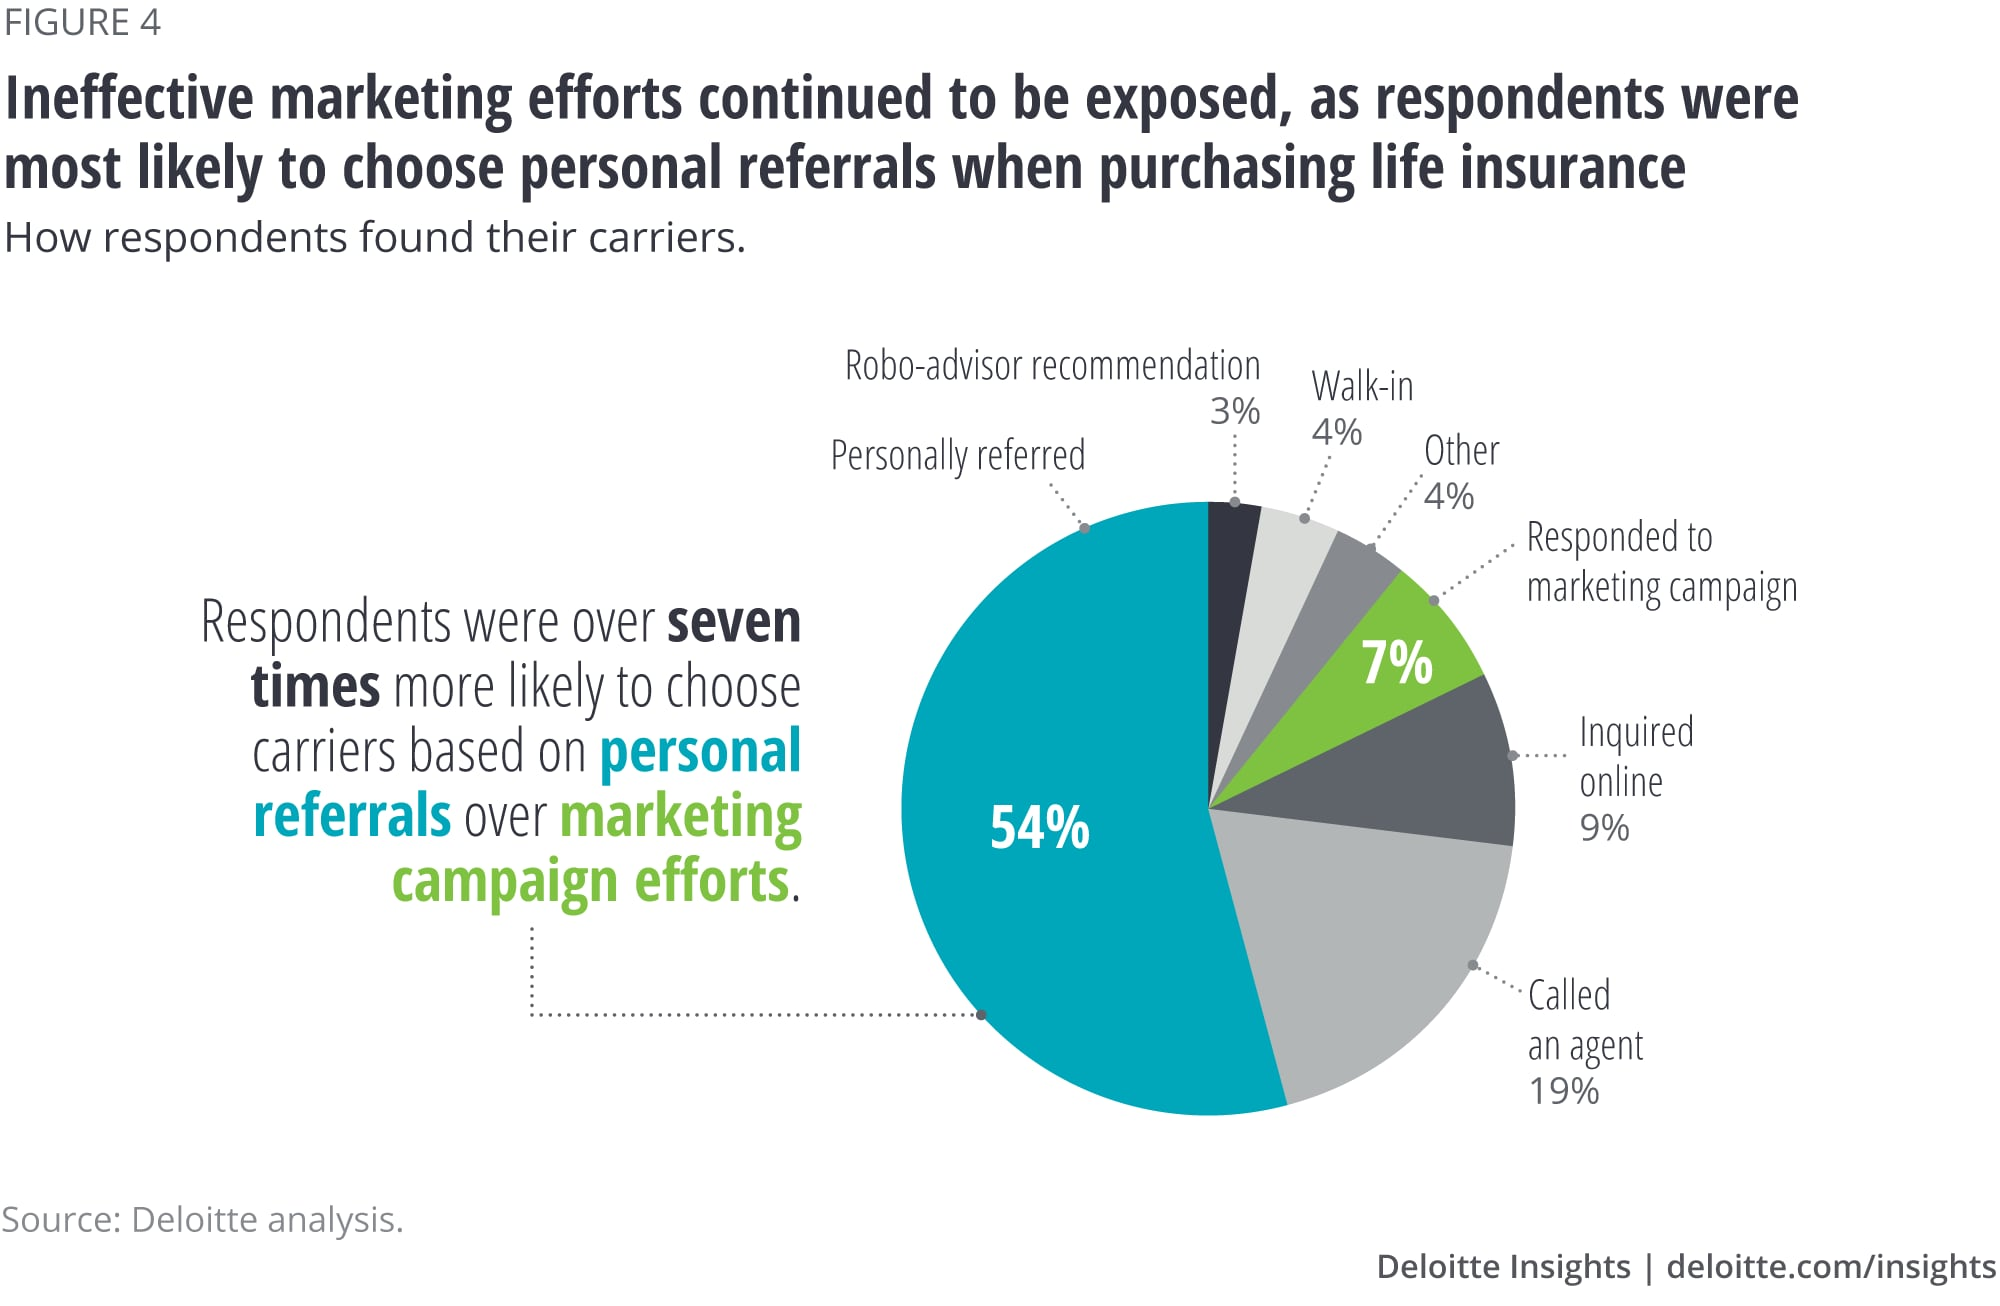 Ineffective marketing efforts continued to be exposed, as respondents were most likely to choose personal referrals when purchasing life insurance